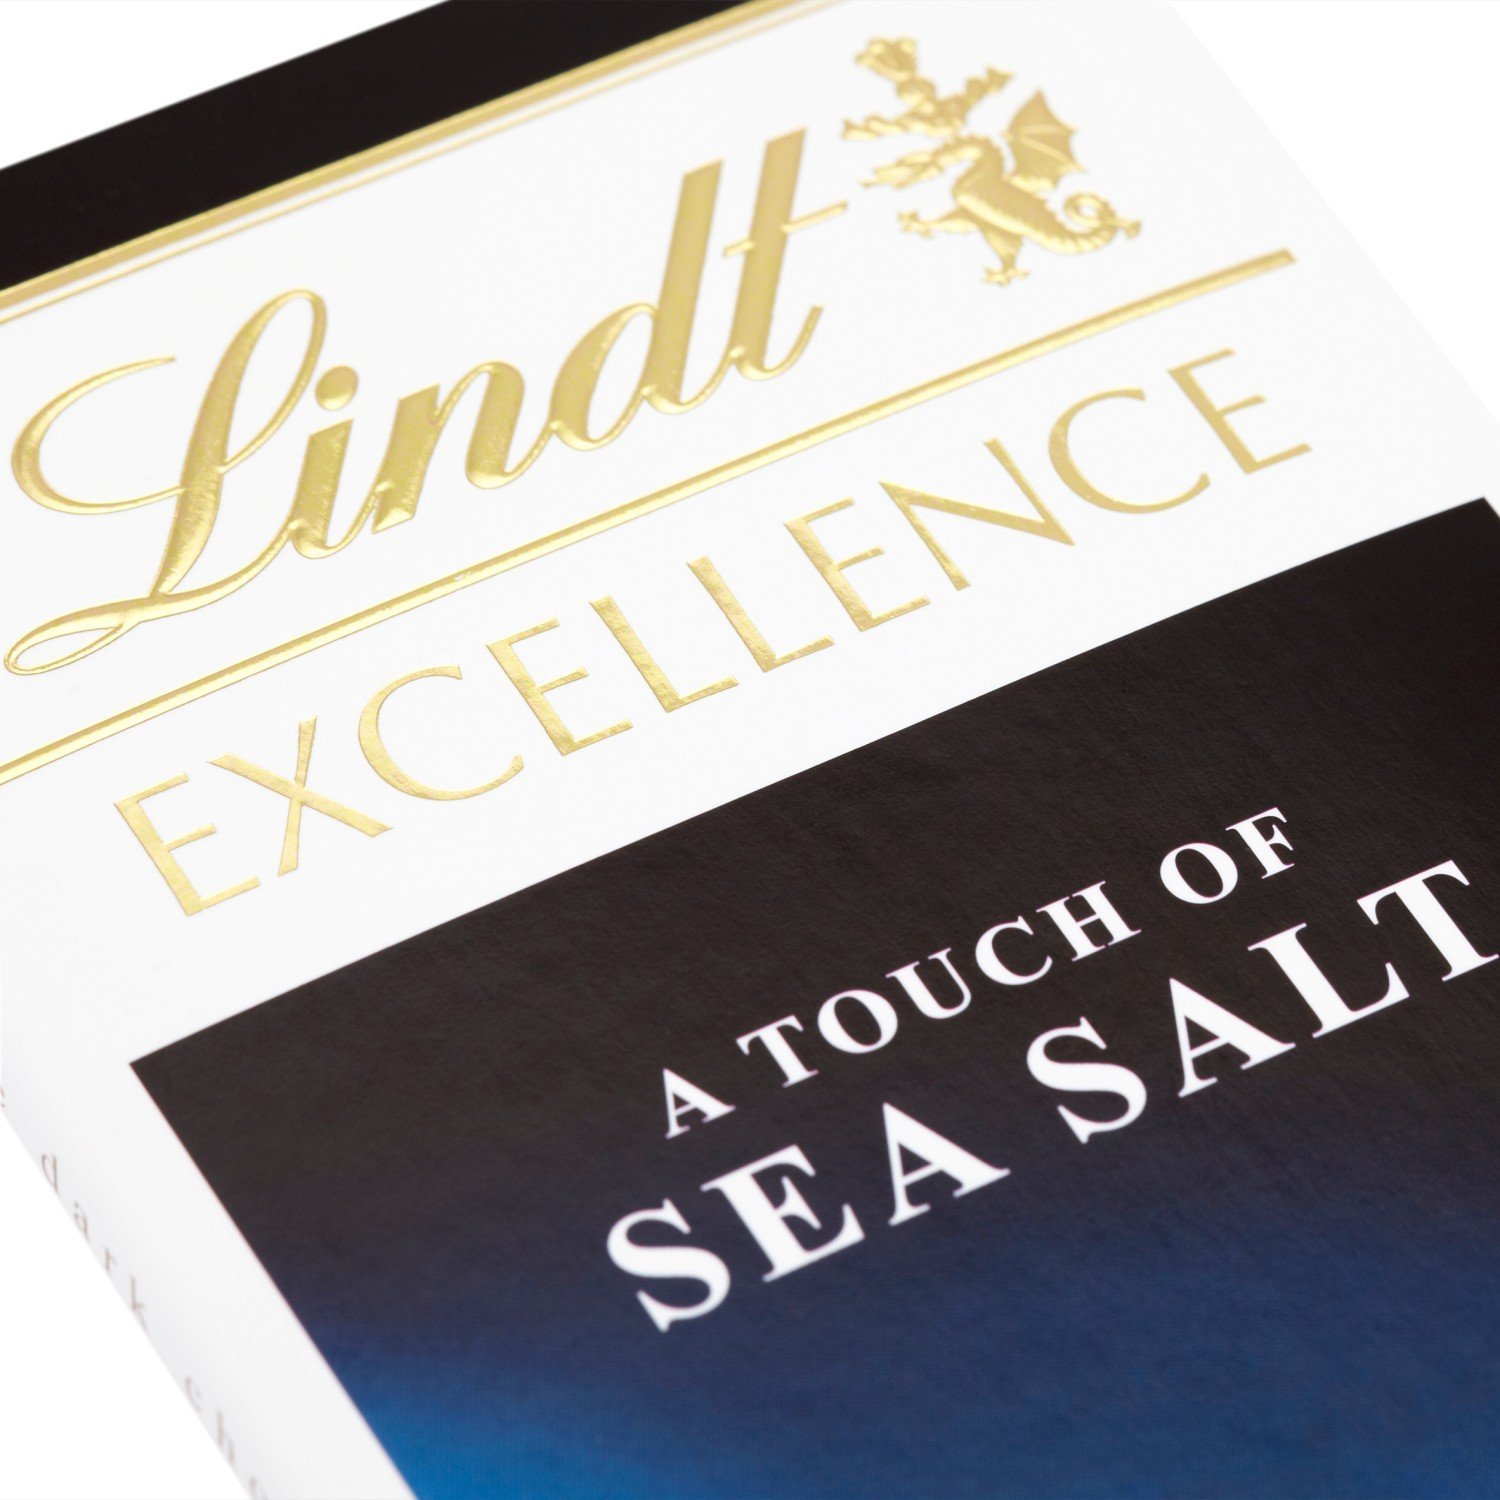 Amazon.com : Lindt - Excellence - Dark with a Touch of Sea Salt - 100g : Candy And Chocolate Bars : Grocery & Gourmet Food